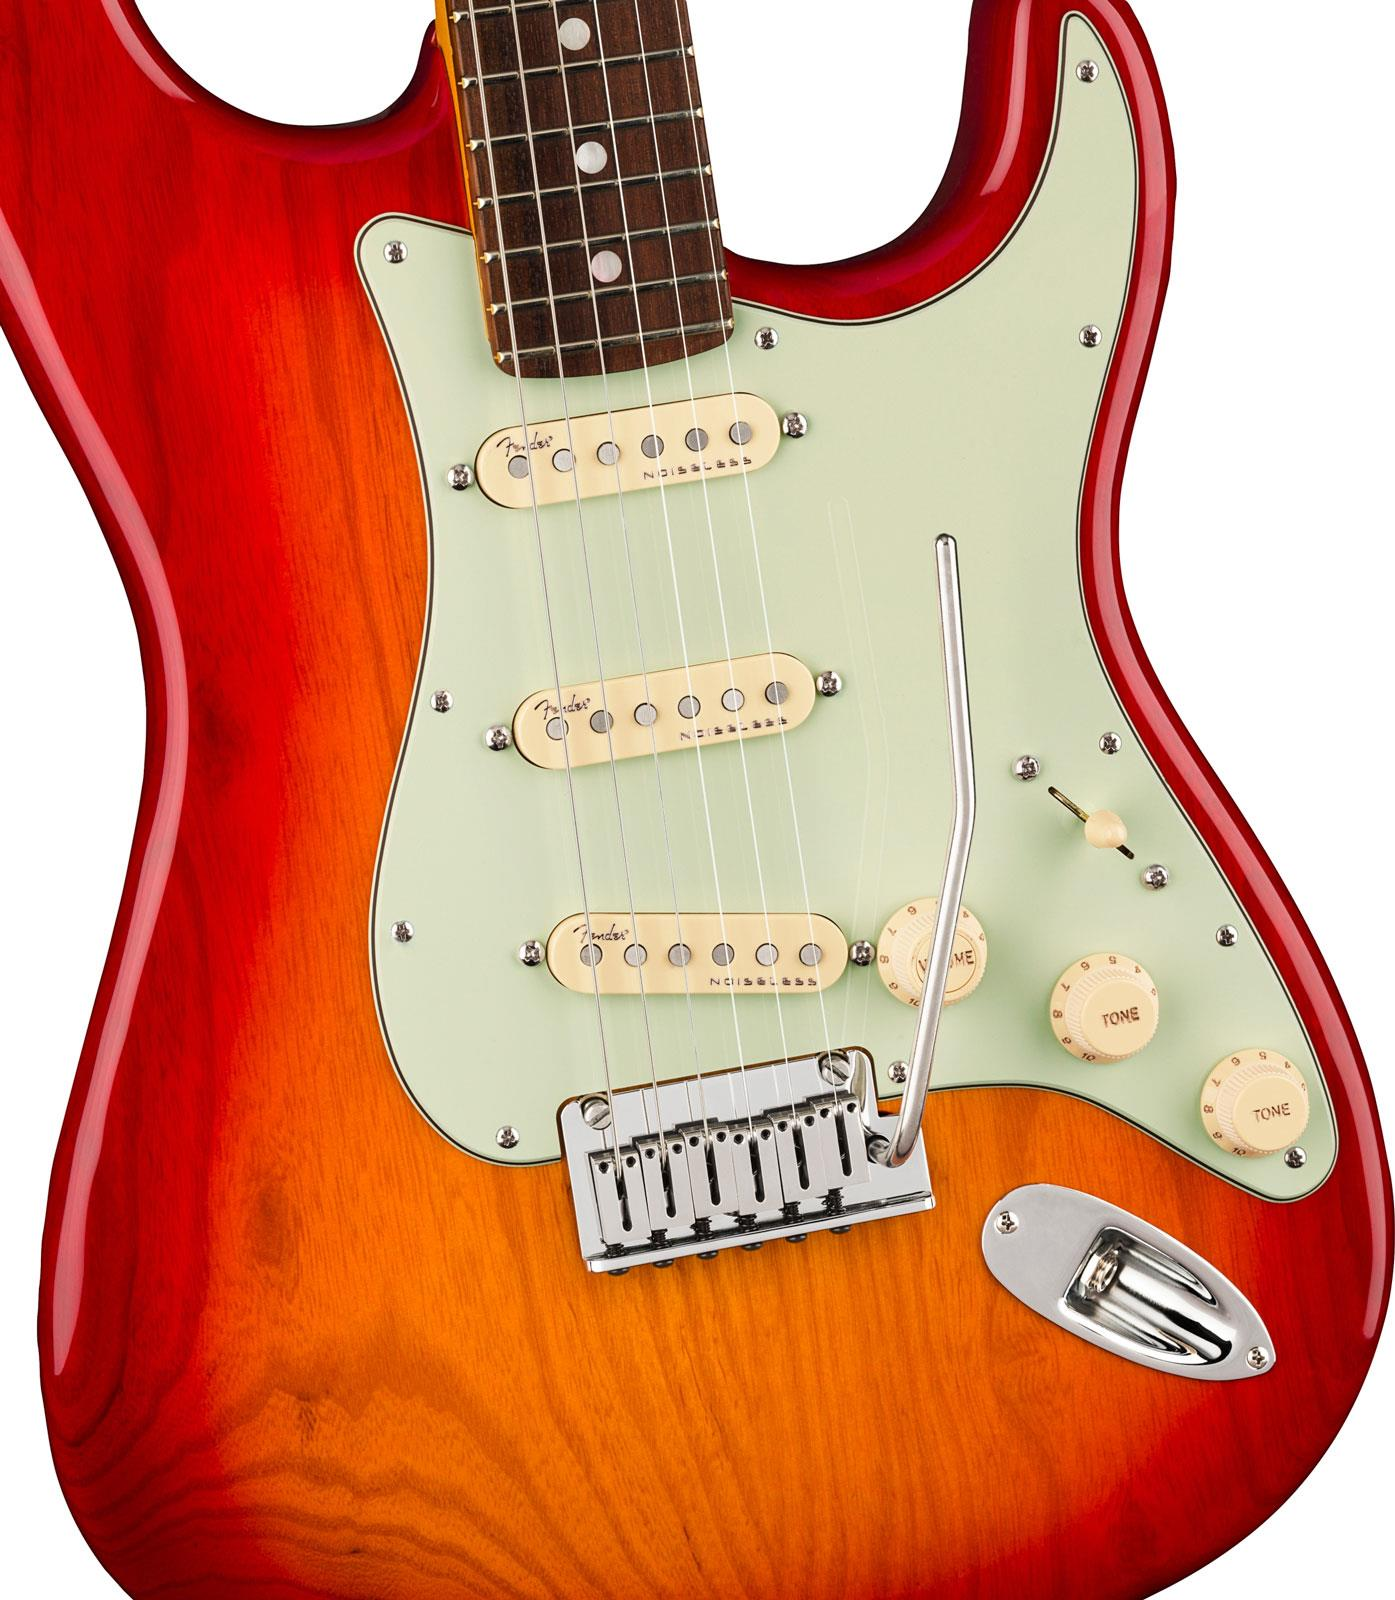 fender american ultra stratocaster rw plasma red burst keymusic. Black Bedroom Furniture Sets. Home Design Ideas